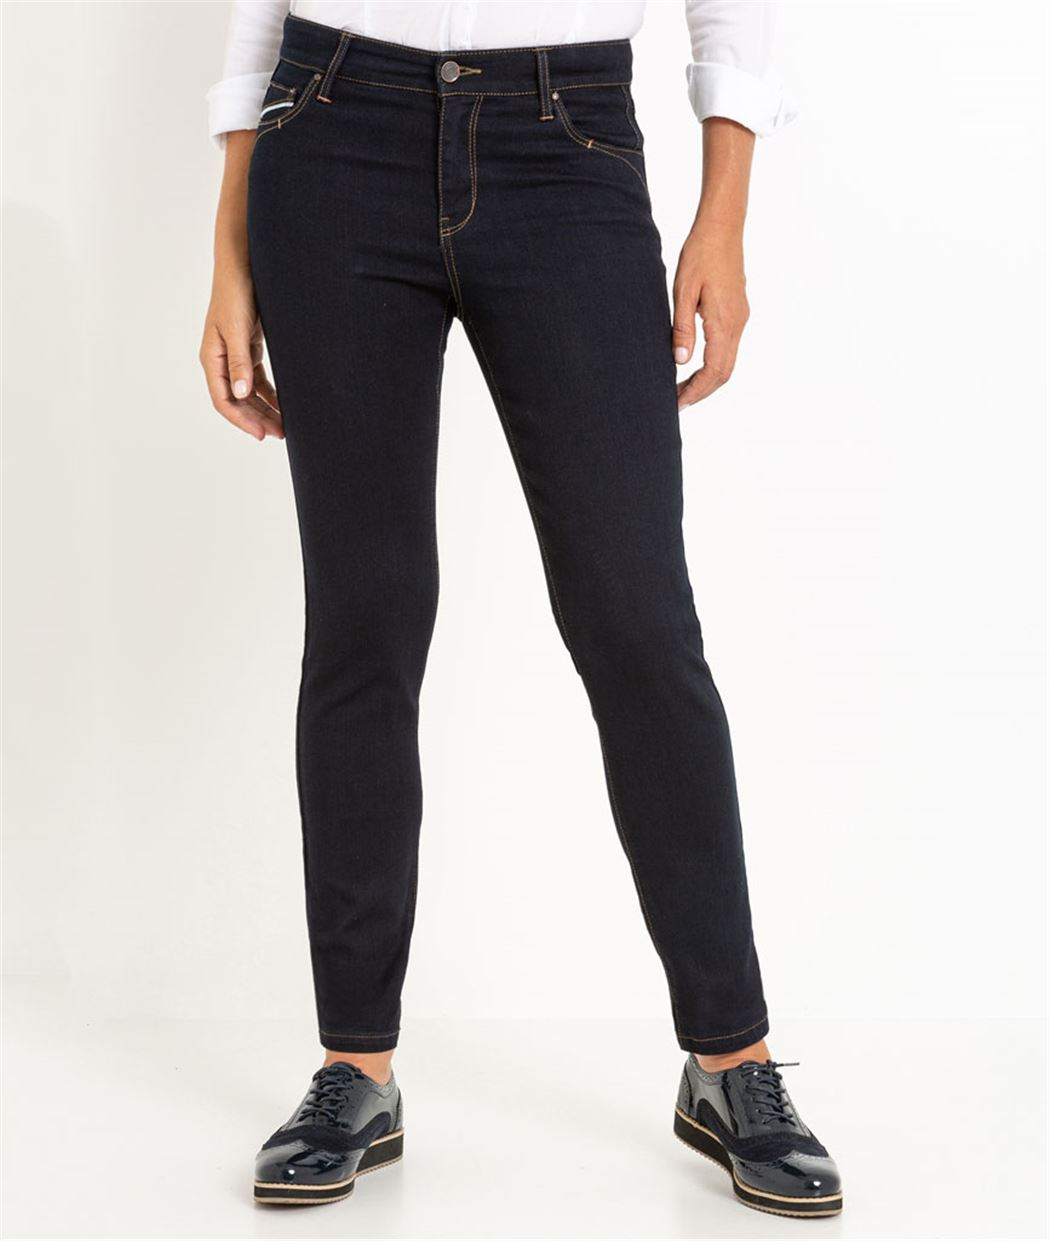 Pantalon raccourci femme denim stretch BLUE BLACK